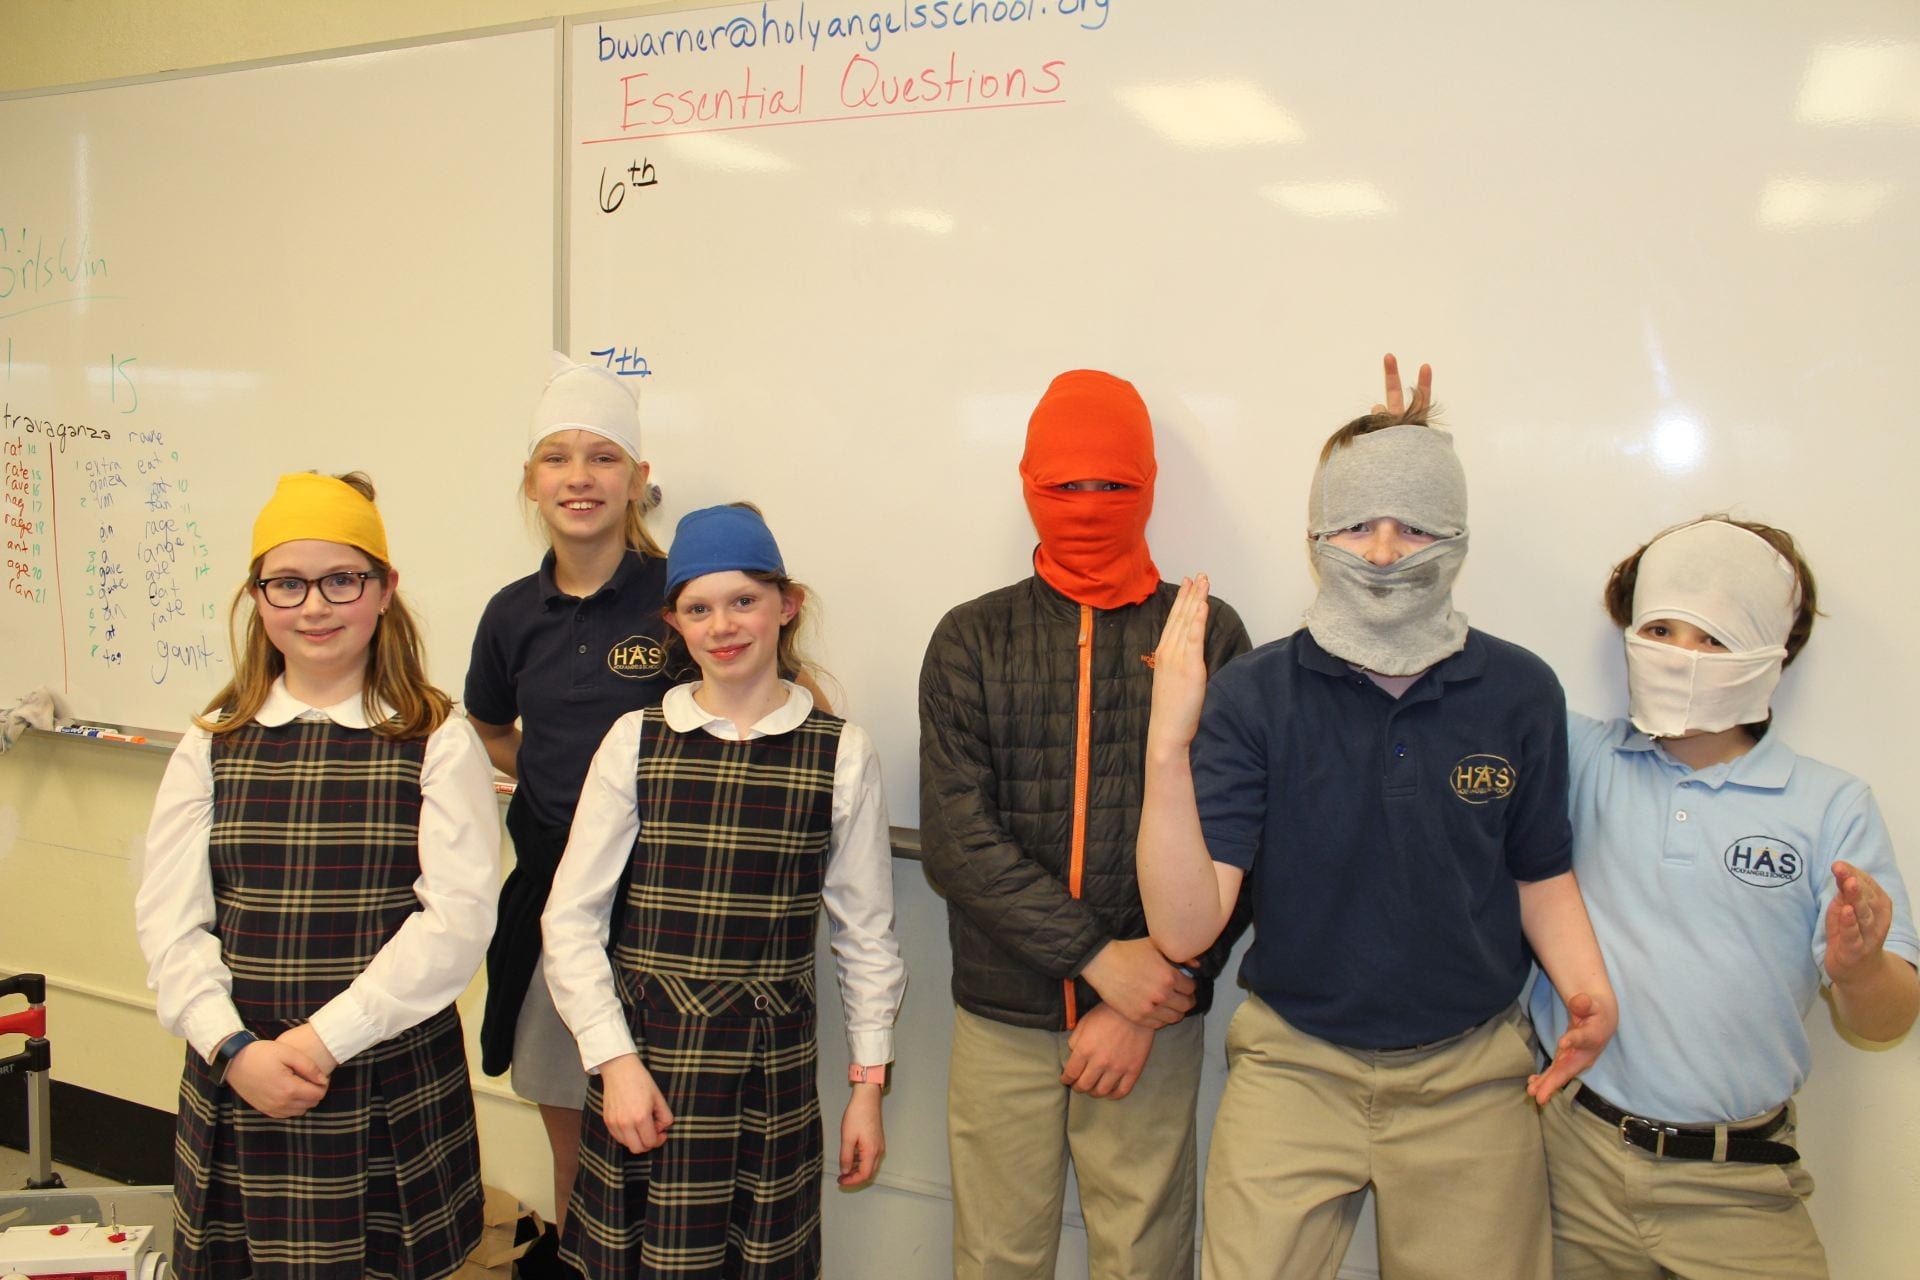 NCC Holy Angels 4H club headbands & face masks from t-shirts